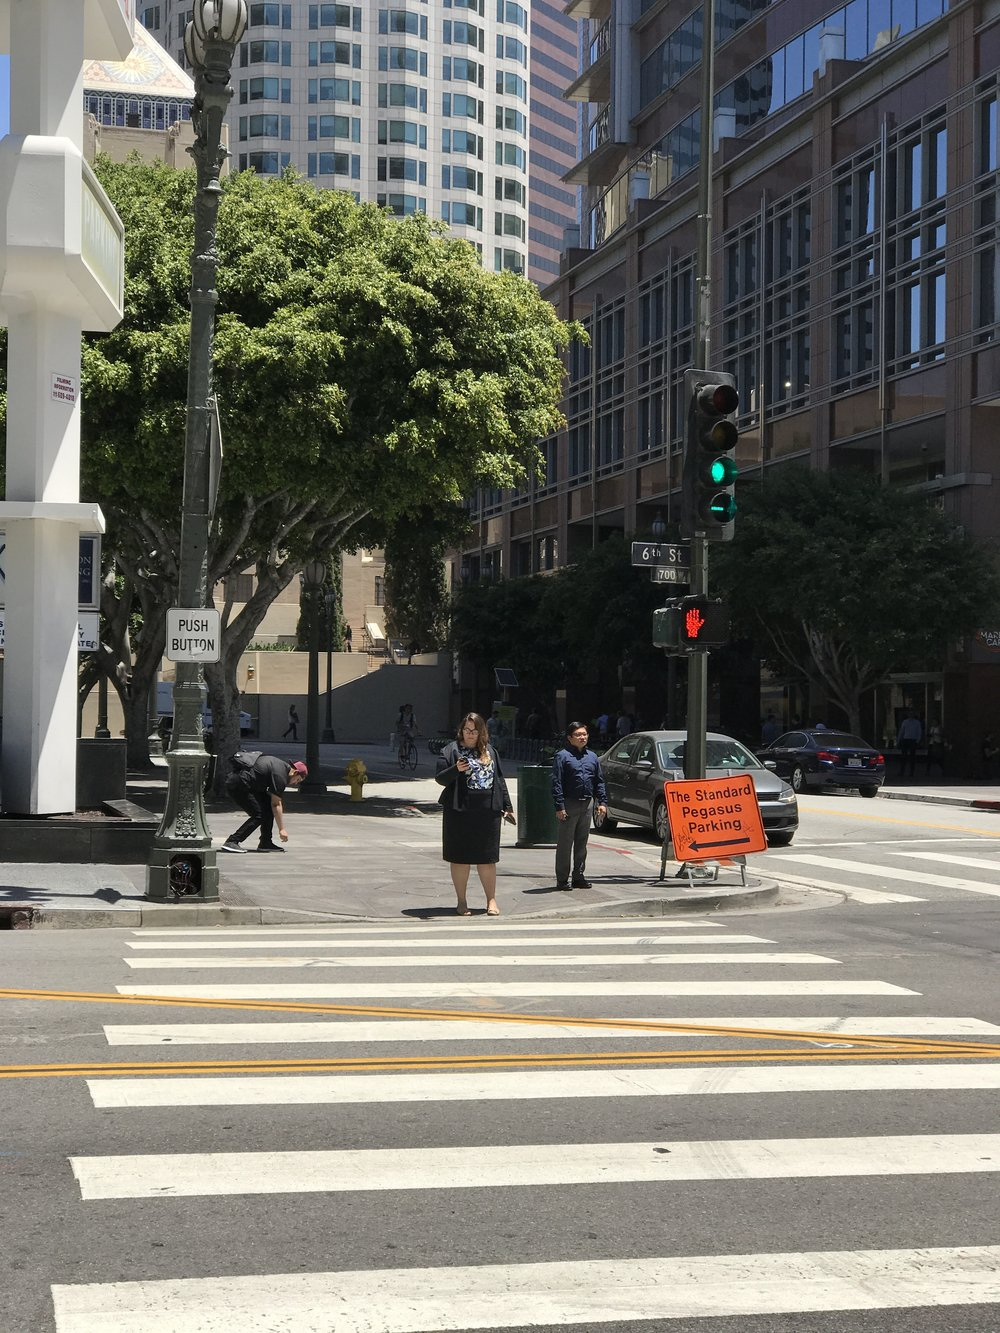 "The reengineered intersection of Hope and 6th Streets in Downtown Los Angeles, with signage commanding pedestrians to ""PRESS BUTTON"" for permission to cross."